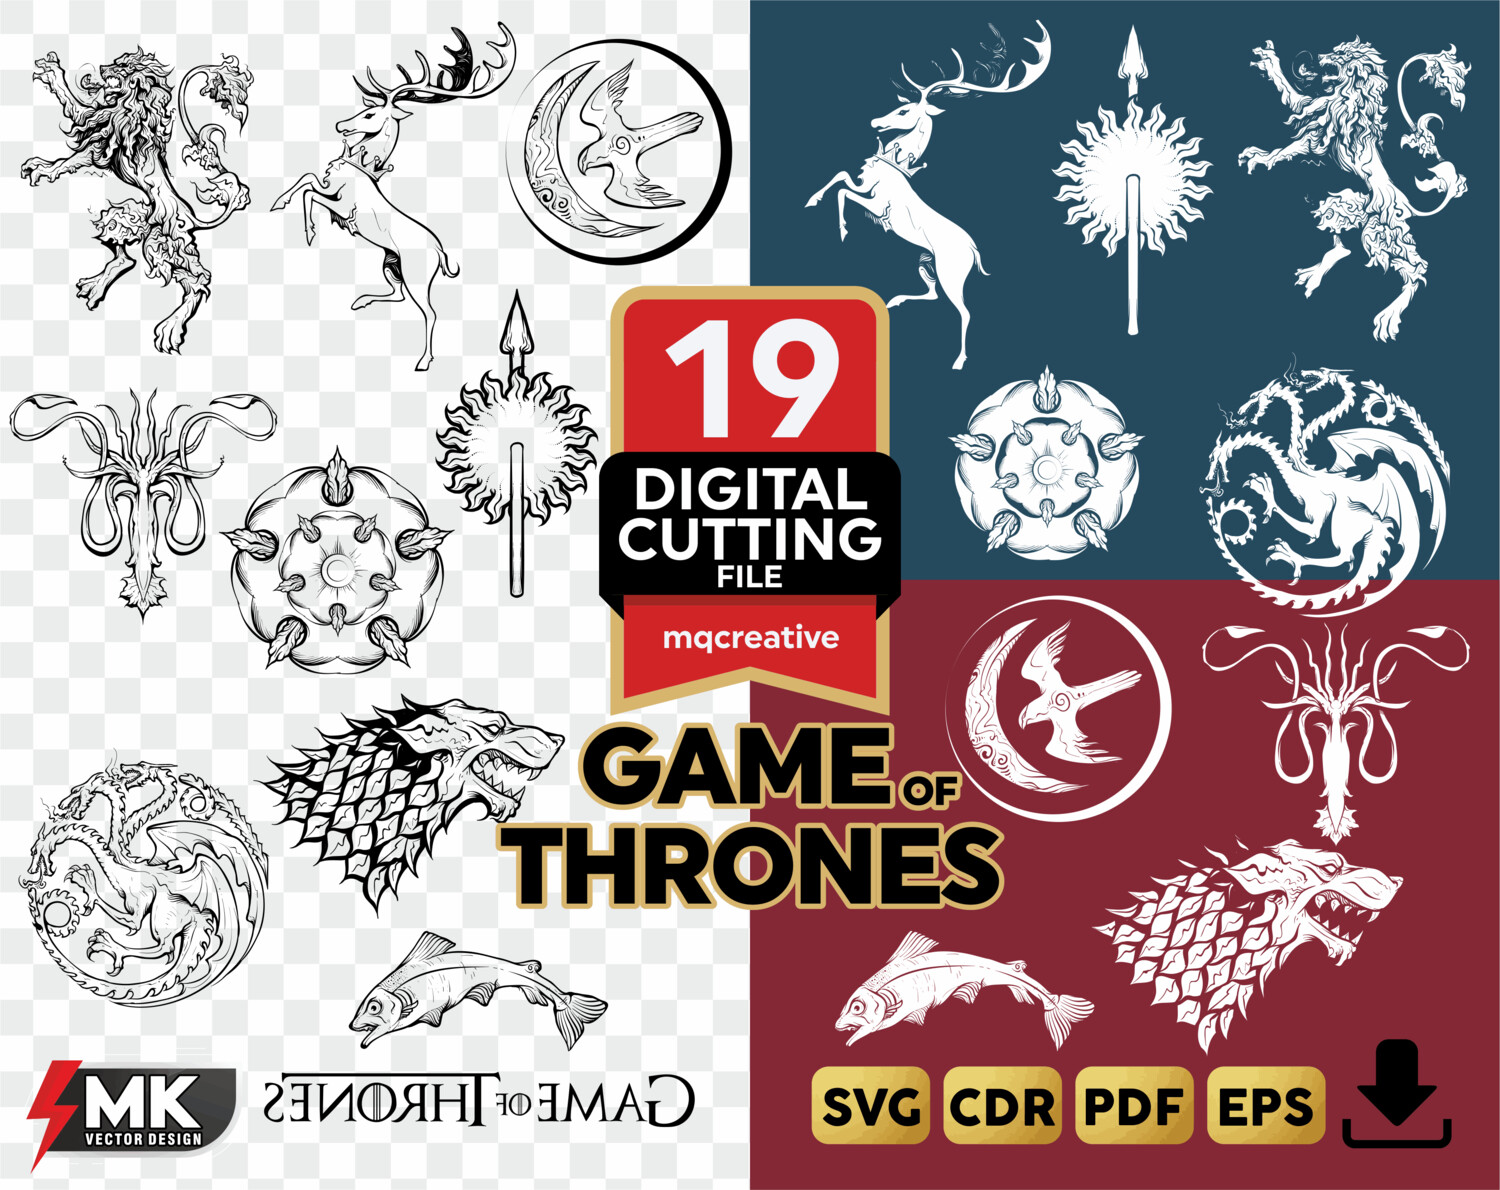 GAME OF THRONES houses silhouette Clipartsvgcut by SVGMKCreative.